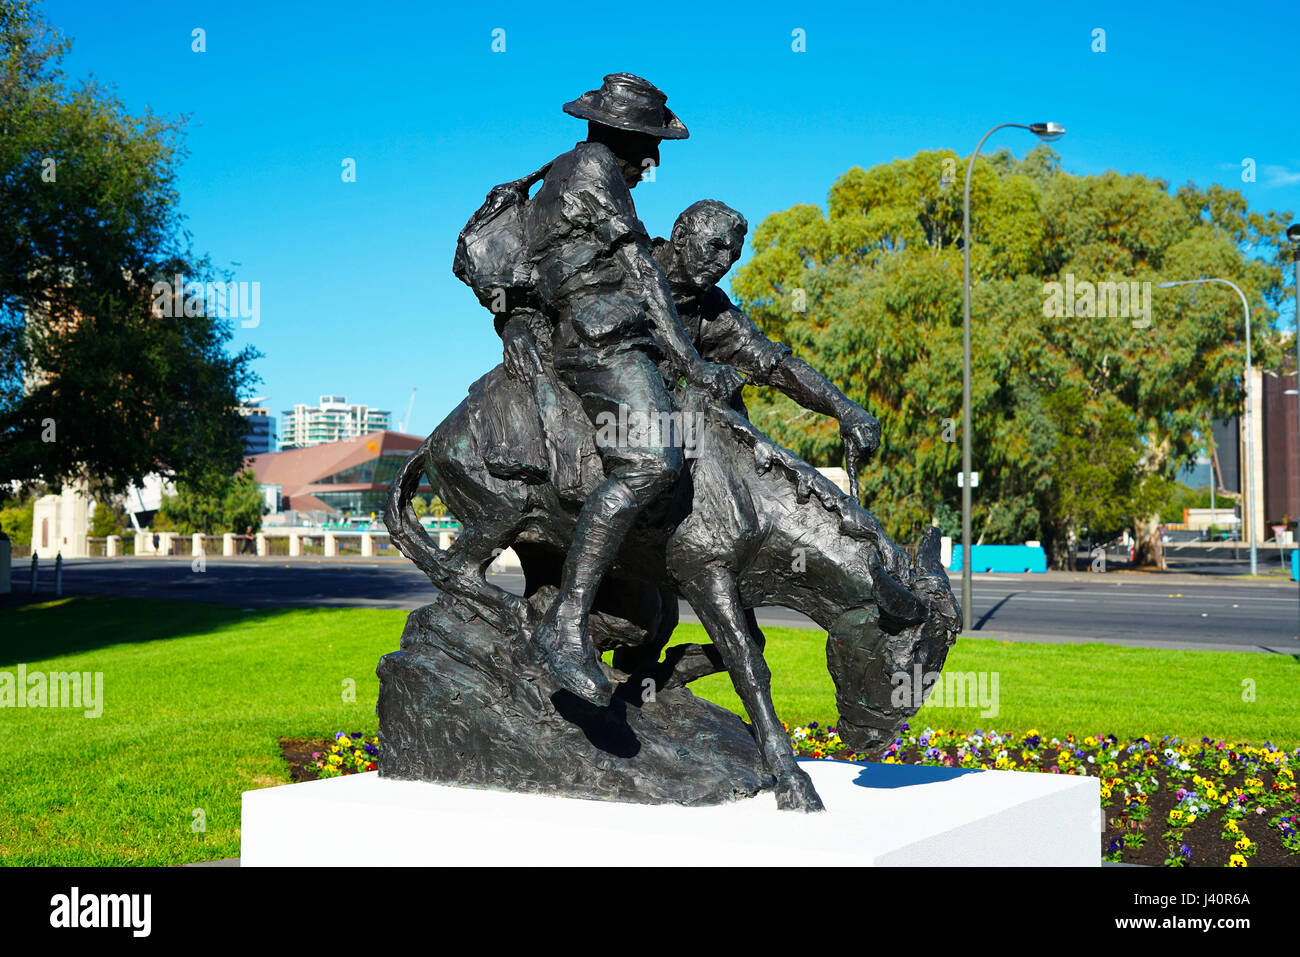 ADELAIDE, SOUTH AUSTRALIA - APRIL 28, 2017: The legendary Simpson and his donkey ANZAC memorial statue situated - Stock Image